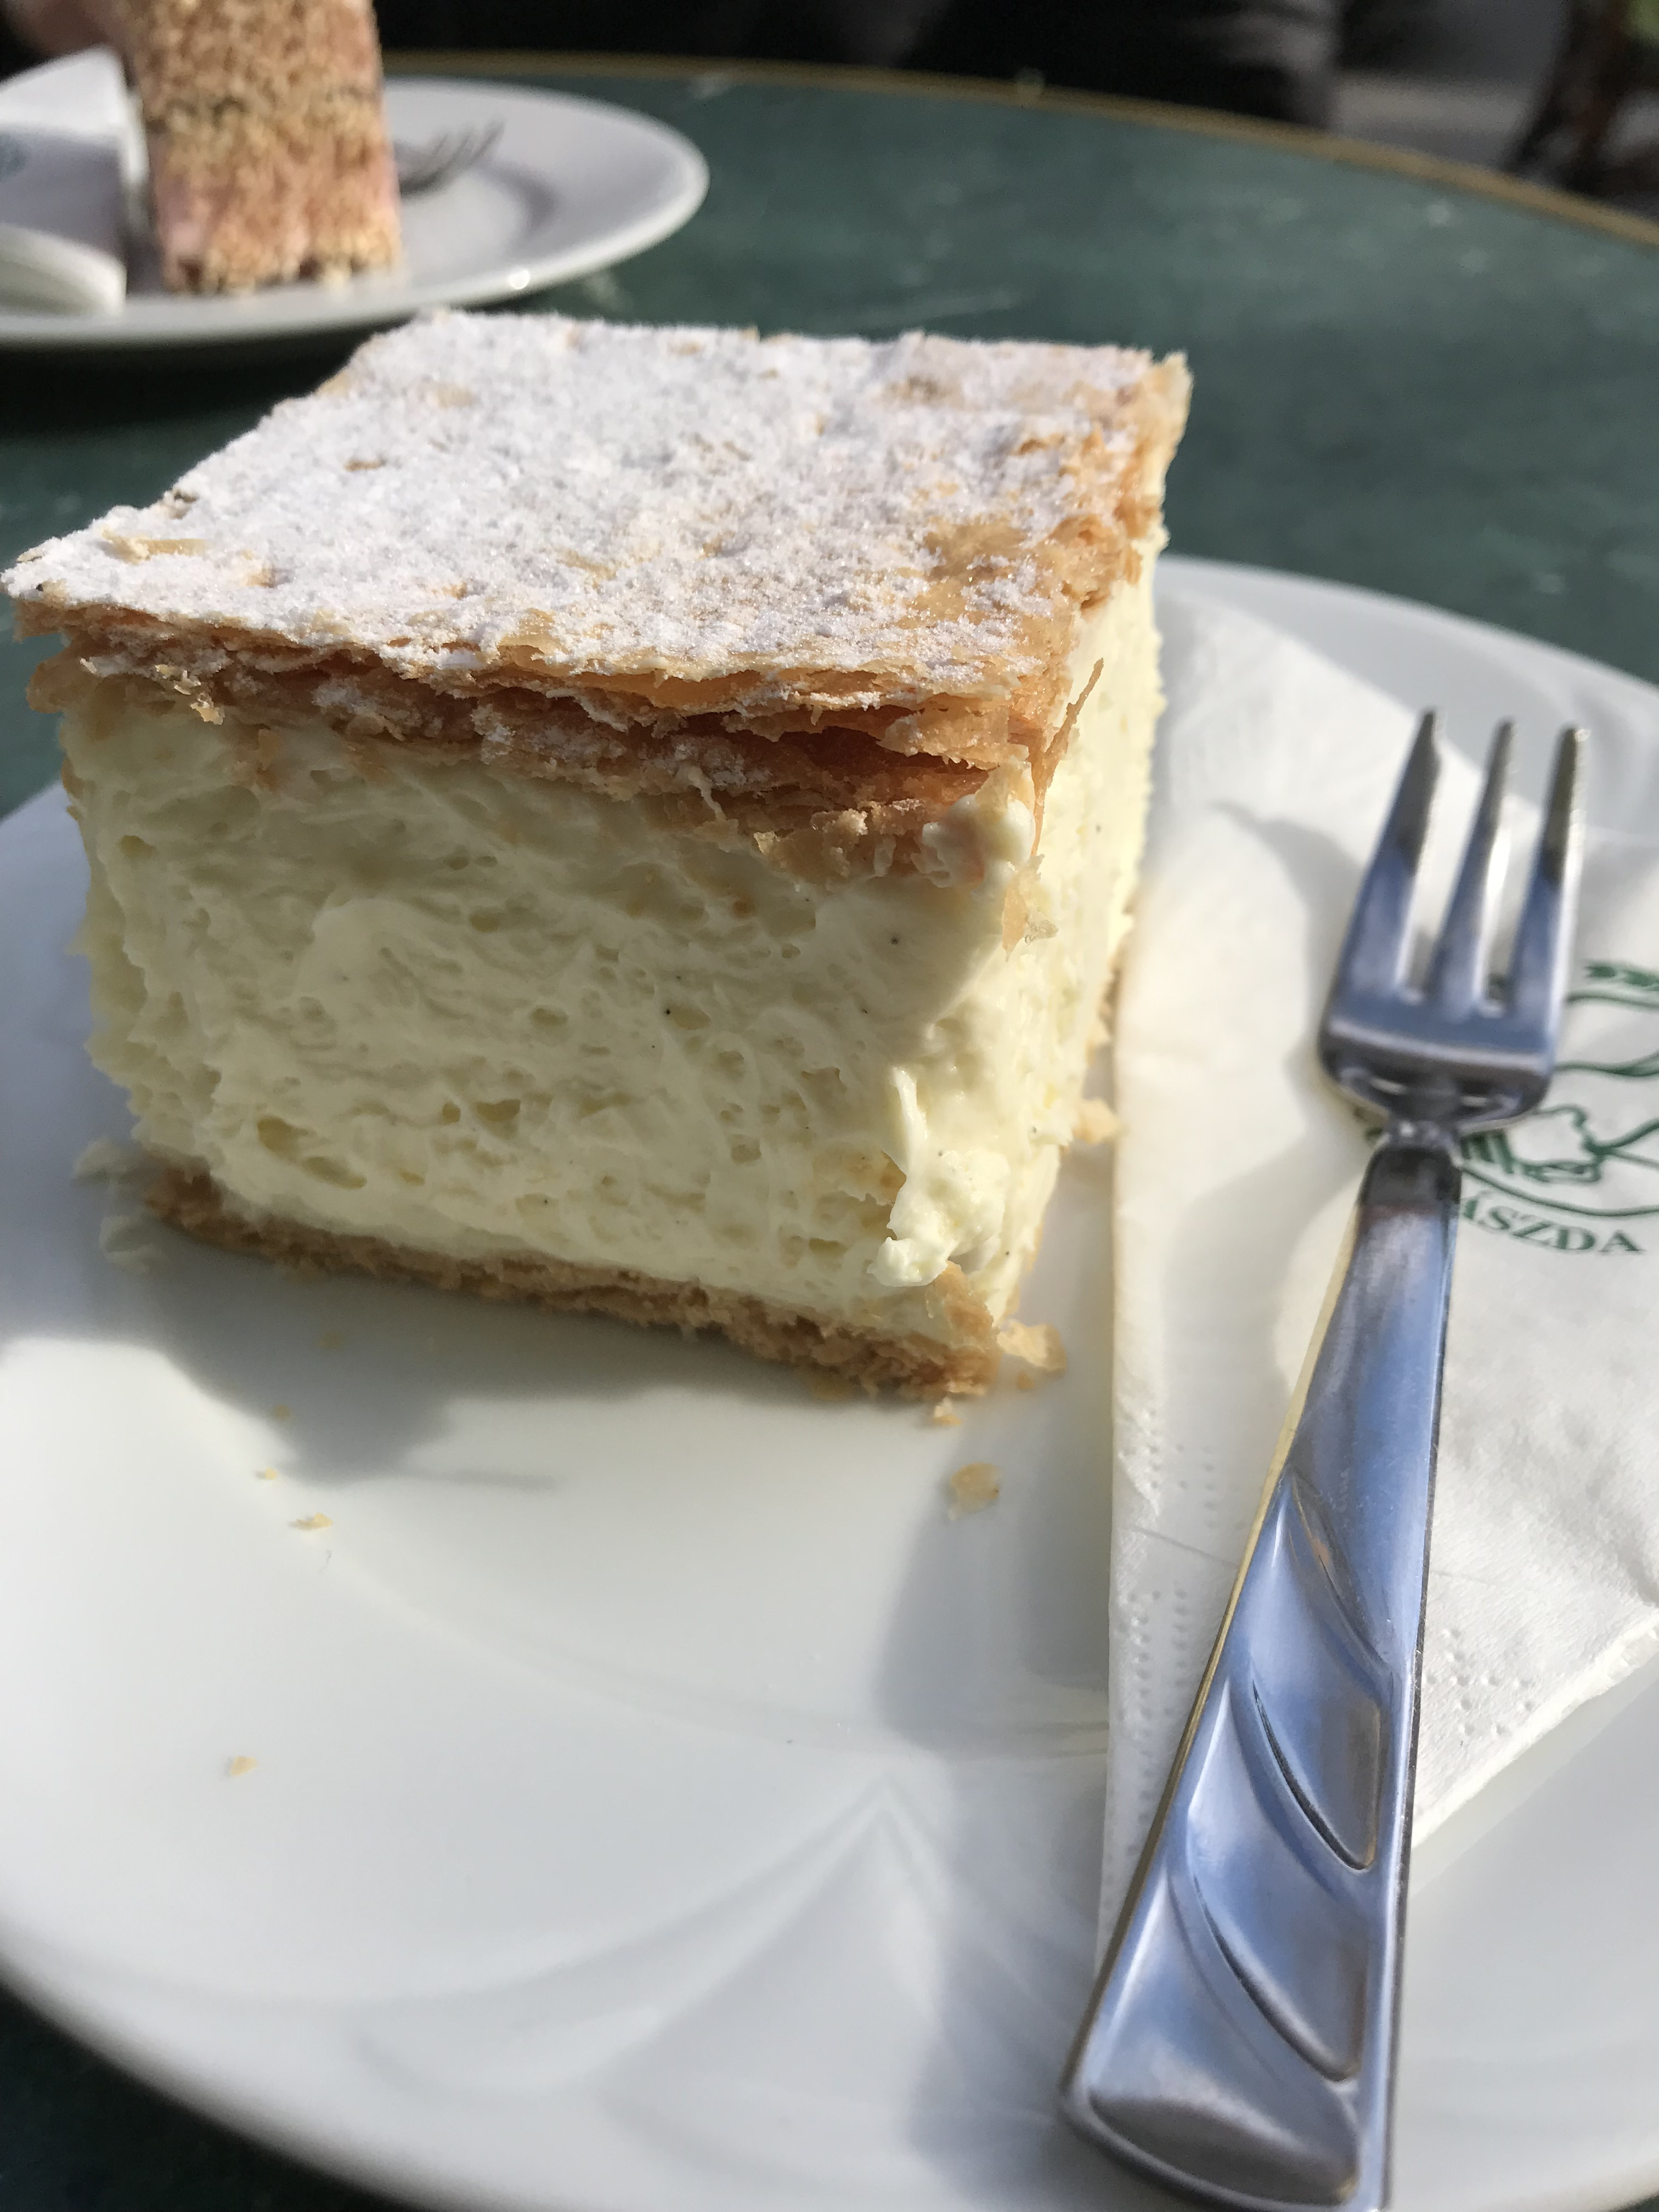 White pastry cream between thin layers of flaky puff pastry on a plate next to a fork